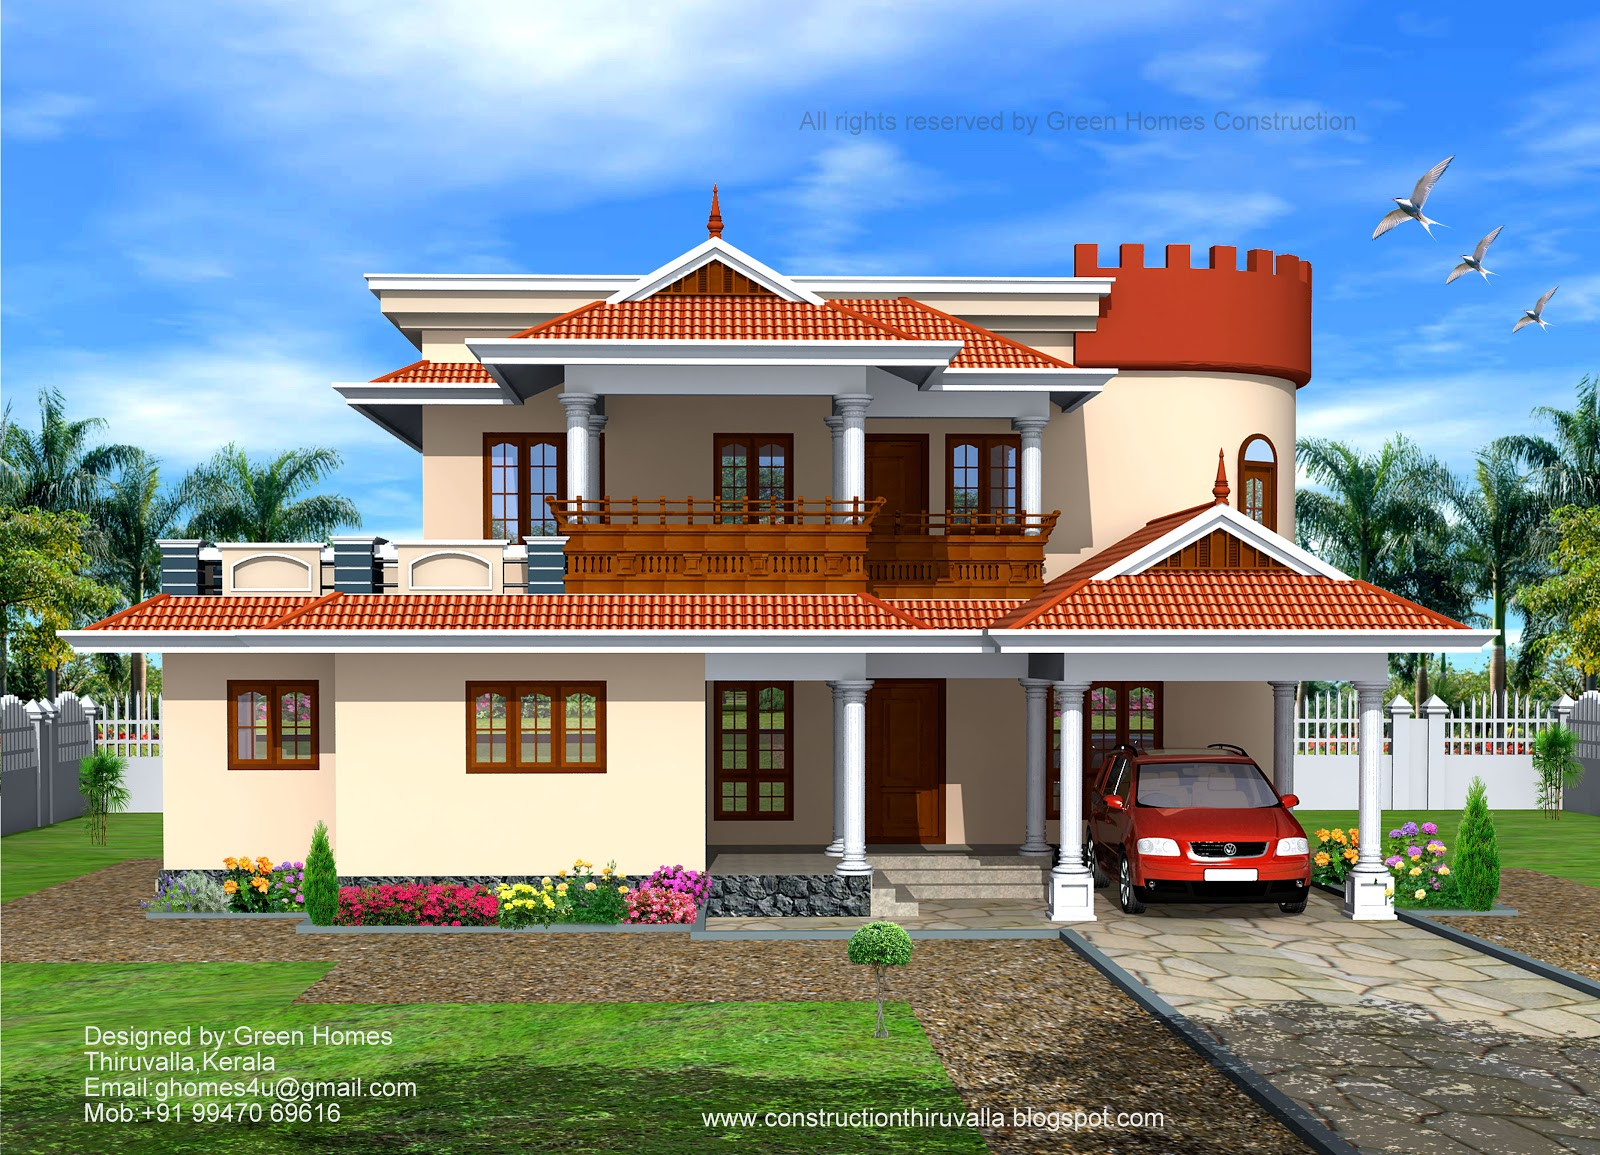 Green homes october 2012 for House structure design in india